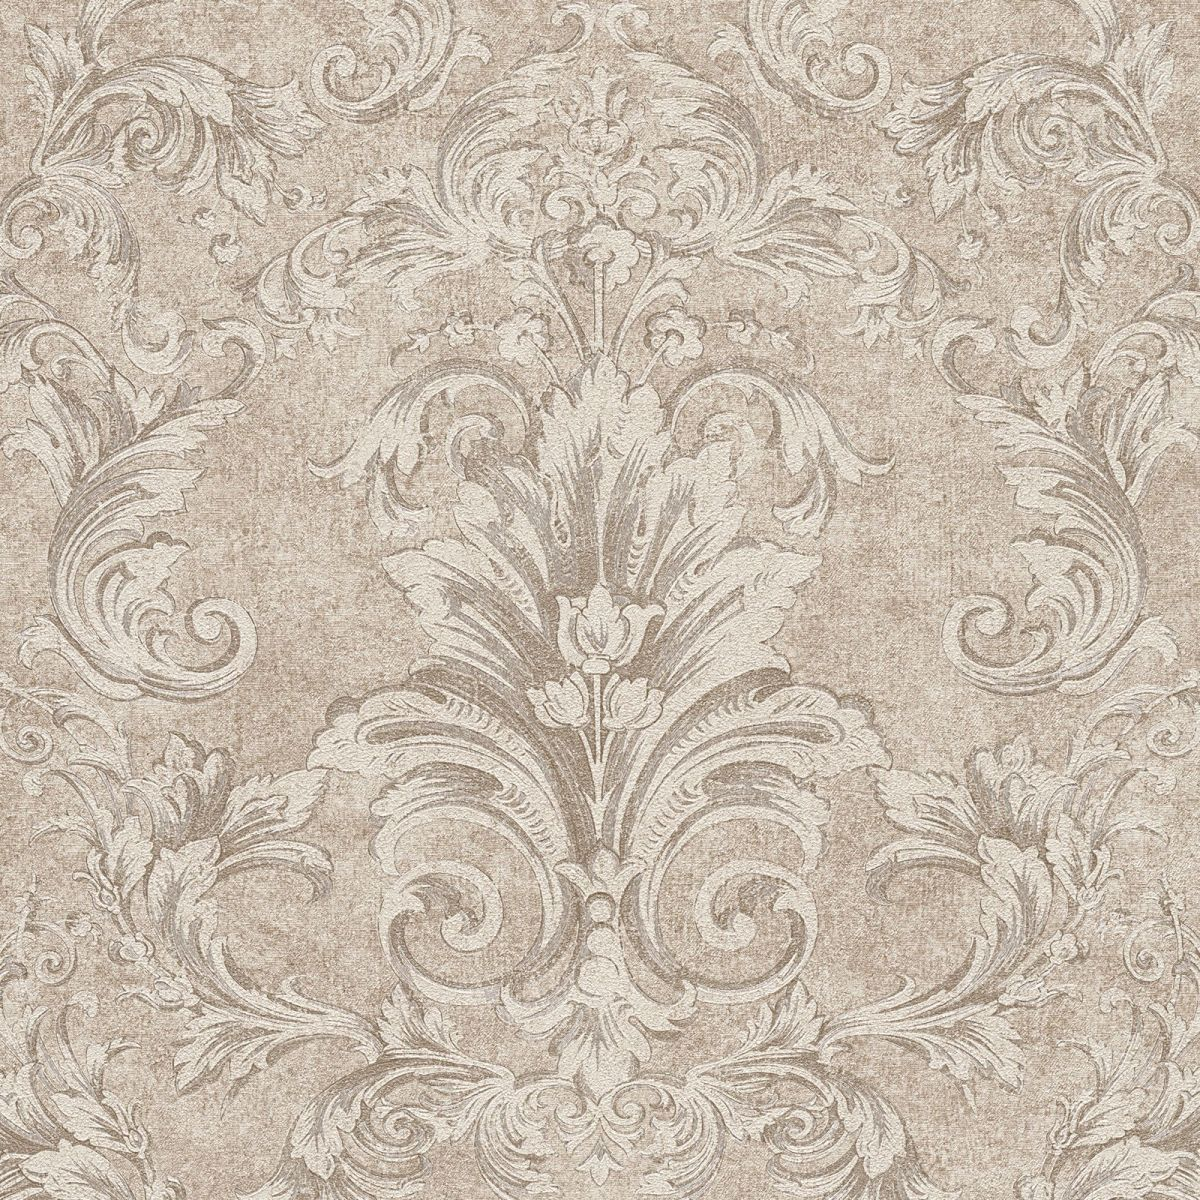 High-quality wallpapers and fabrics | non-woven wallpaper Versace II Pompei 96216-3 | Decowunder